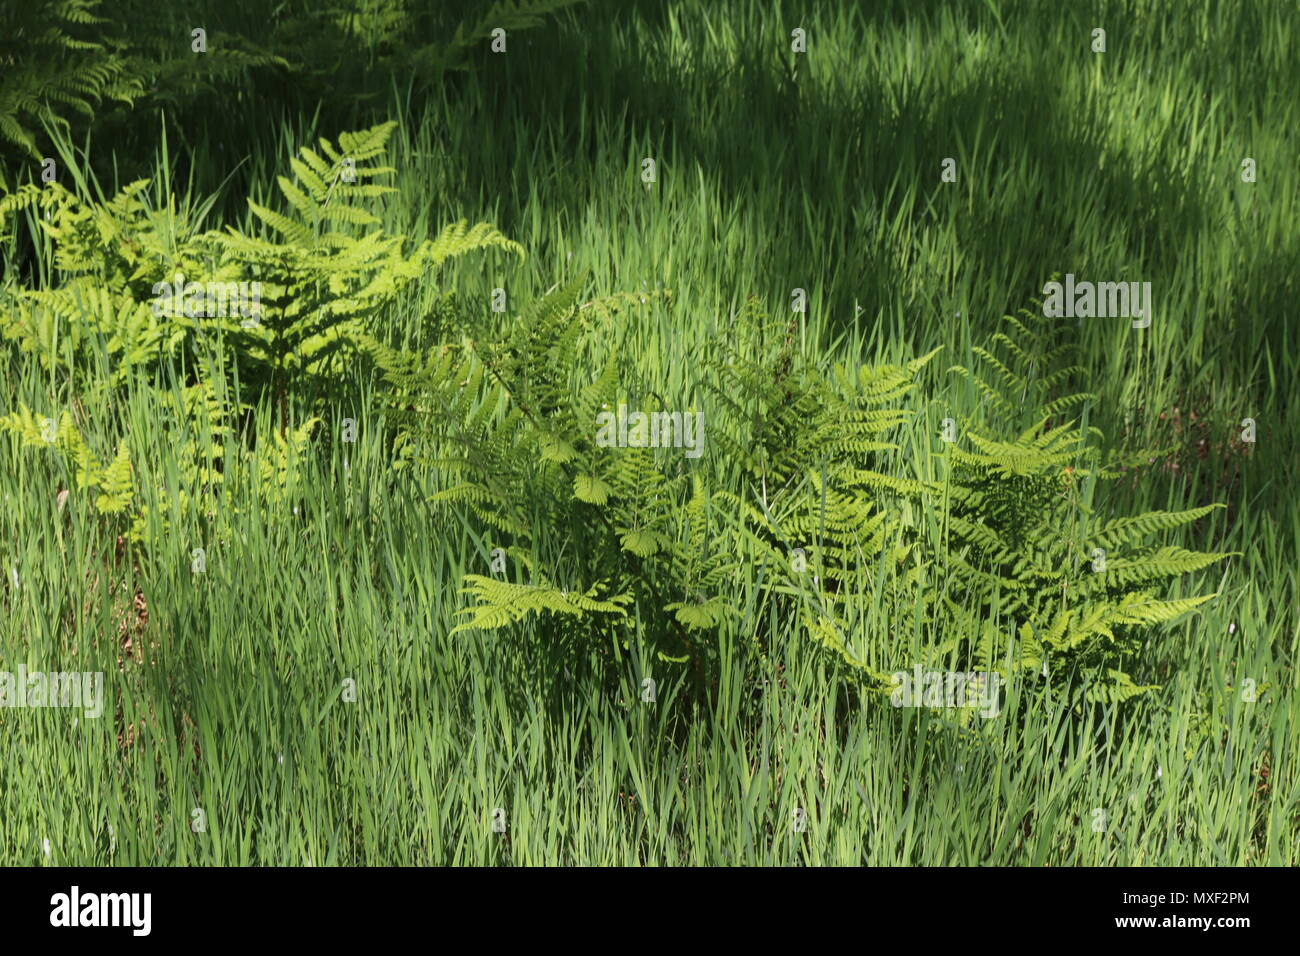 Ferns and grass in undergrowth with tree trunk in background - Stock Image